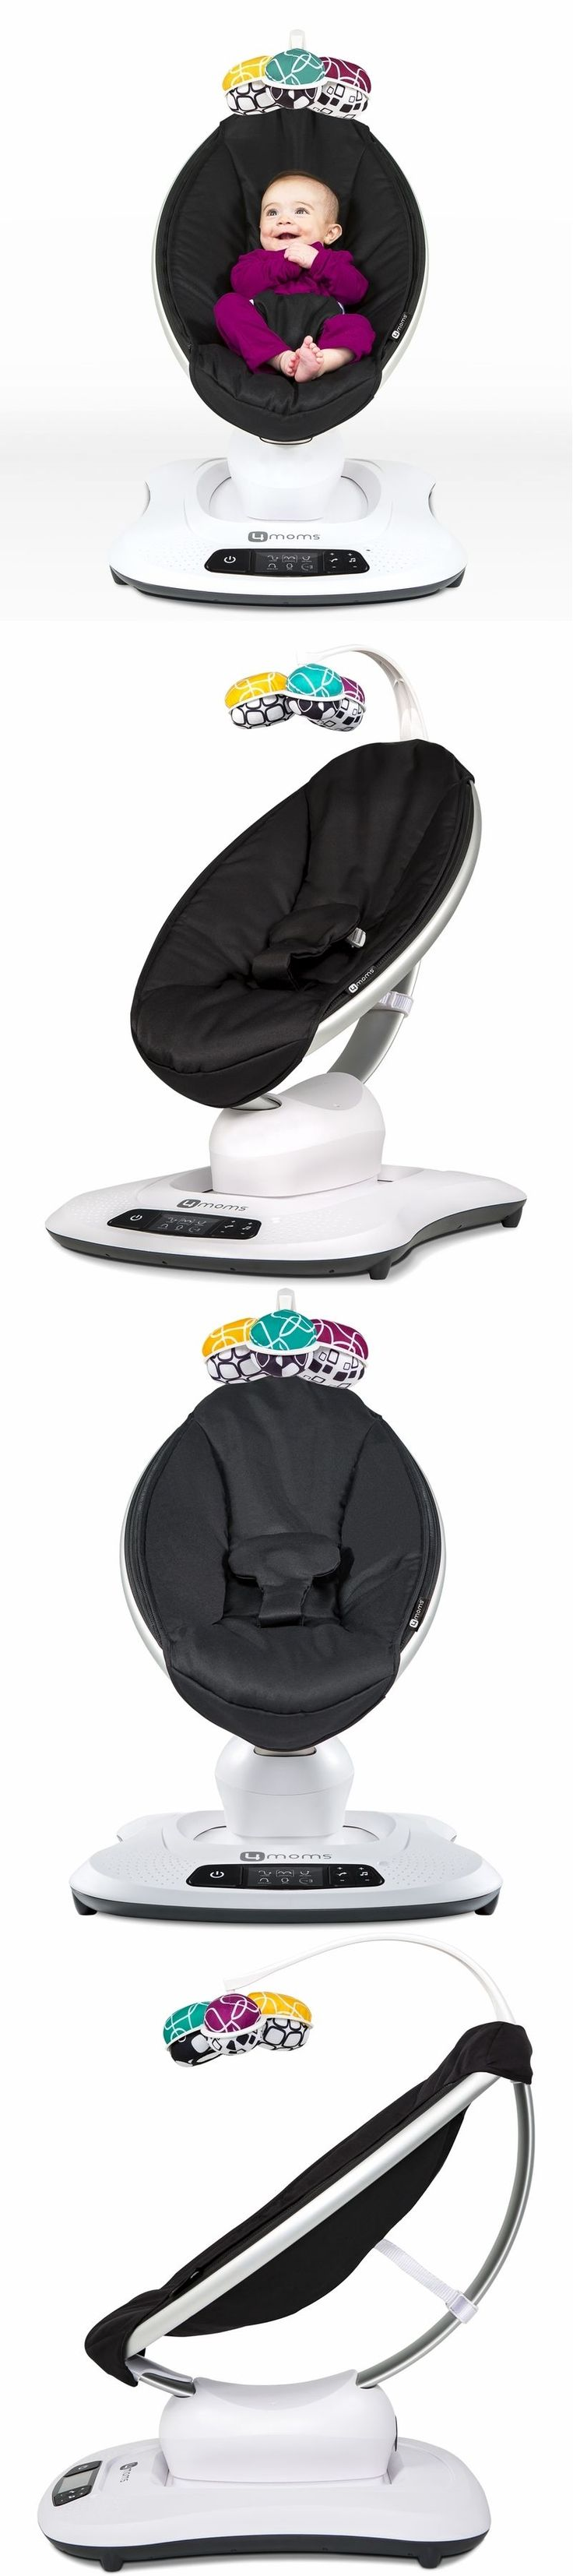 Other Baby Safety and Health 20436: New 4Moms Mamaroo4 Classic Baby Bouncer Swing Bluetooth Mp3 Sound Motion Rocker -> BUY IT NOW ONLY: $269.99 on eBay!